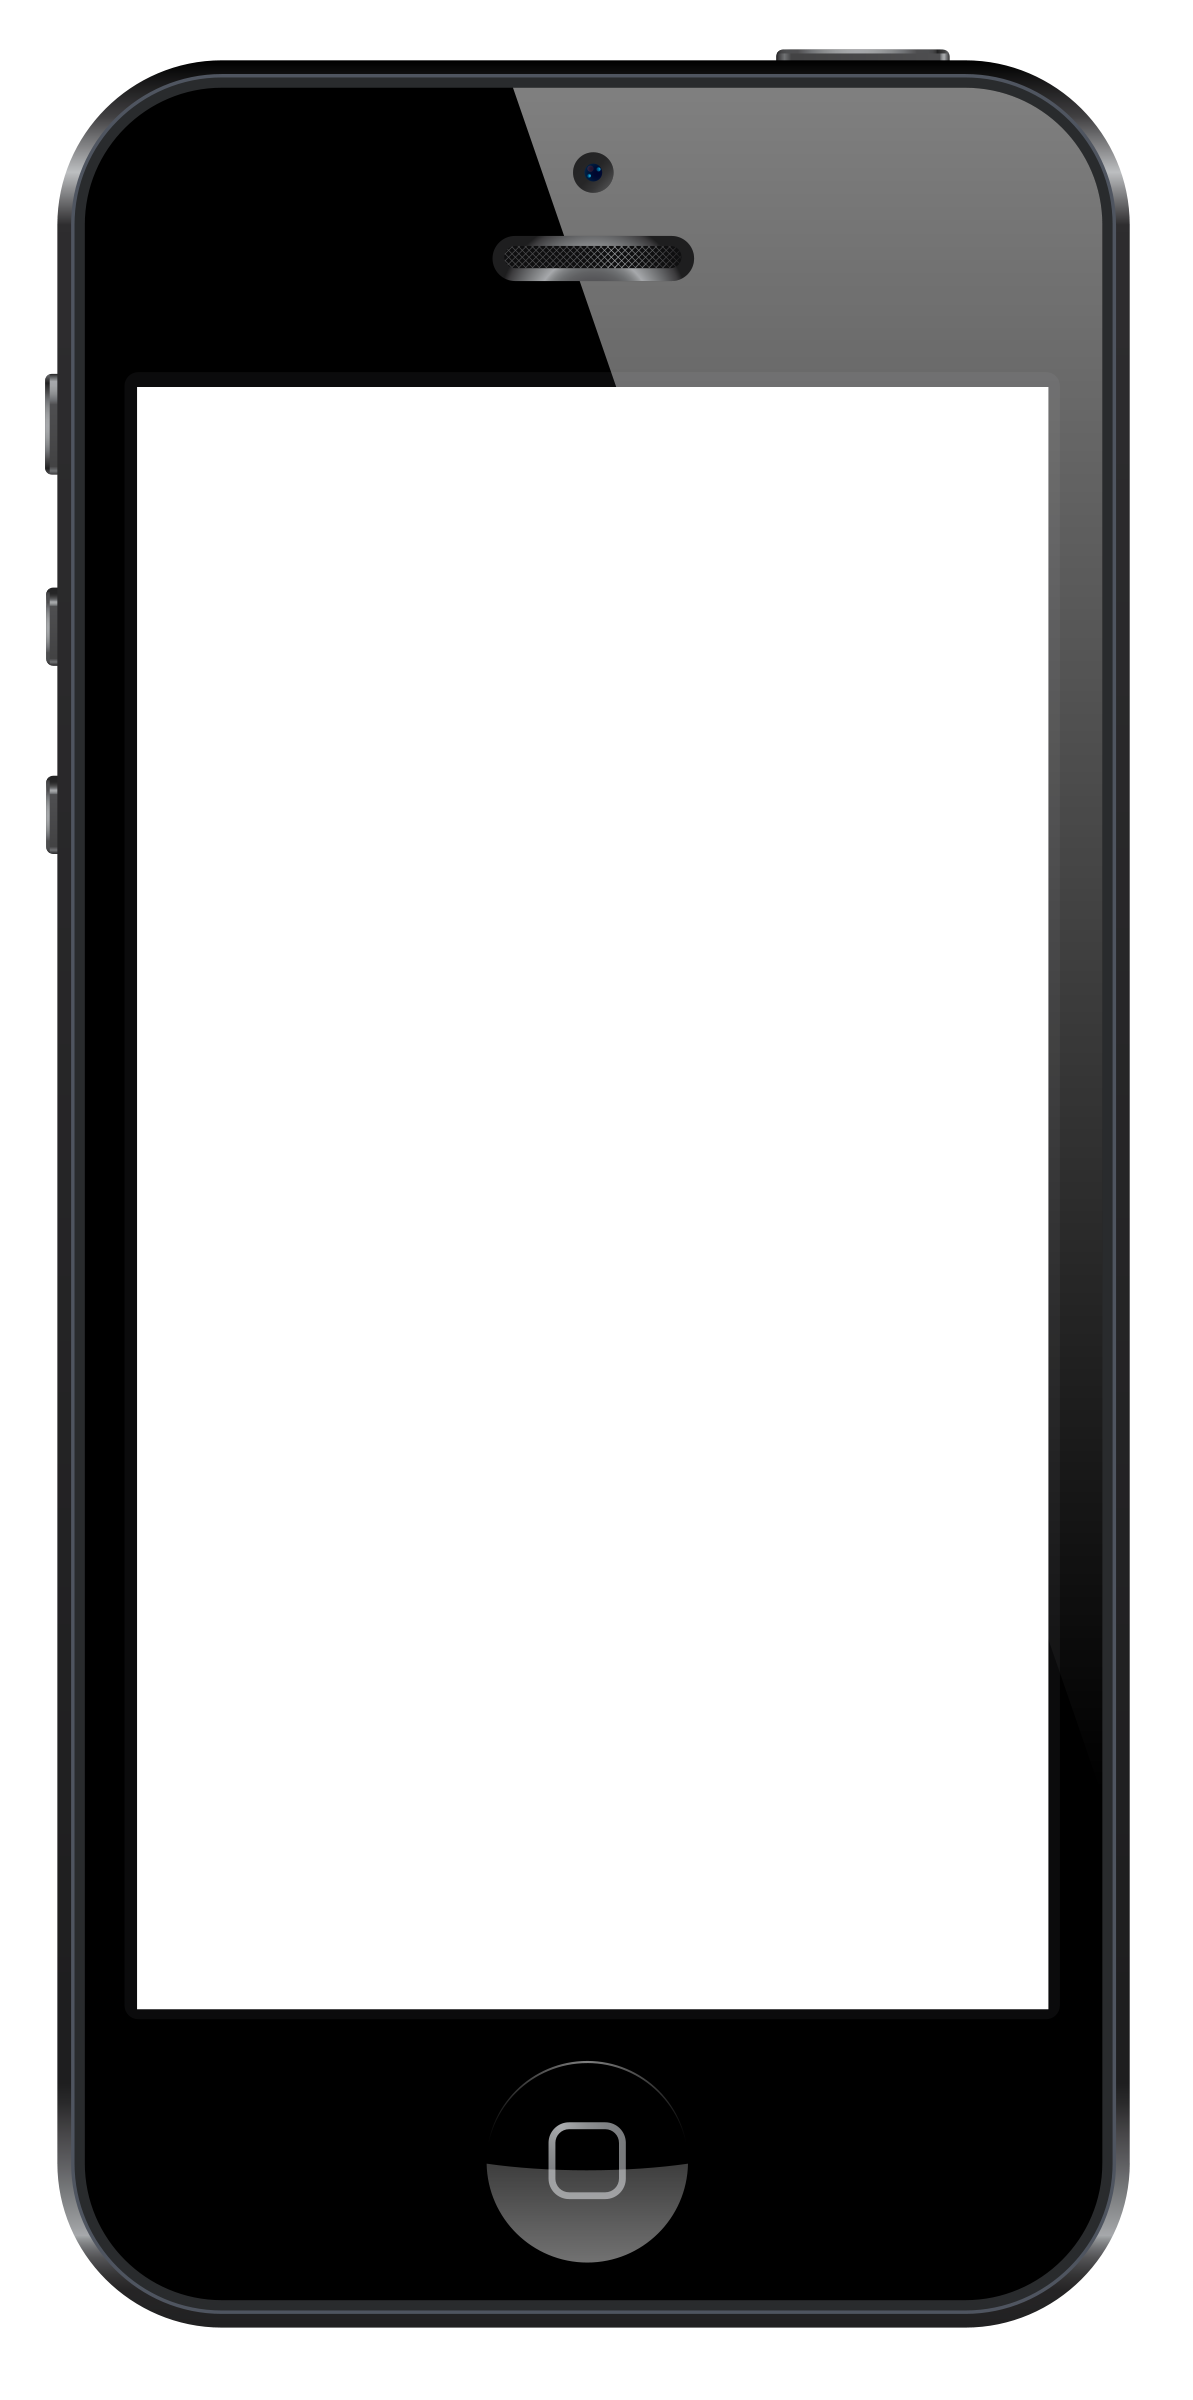 Iphone text png. Transparent pictures free icons